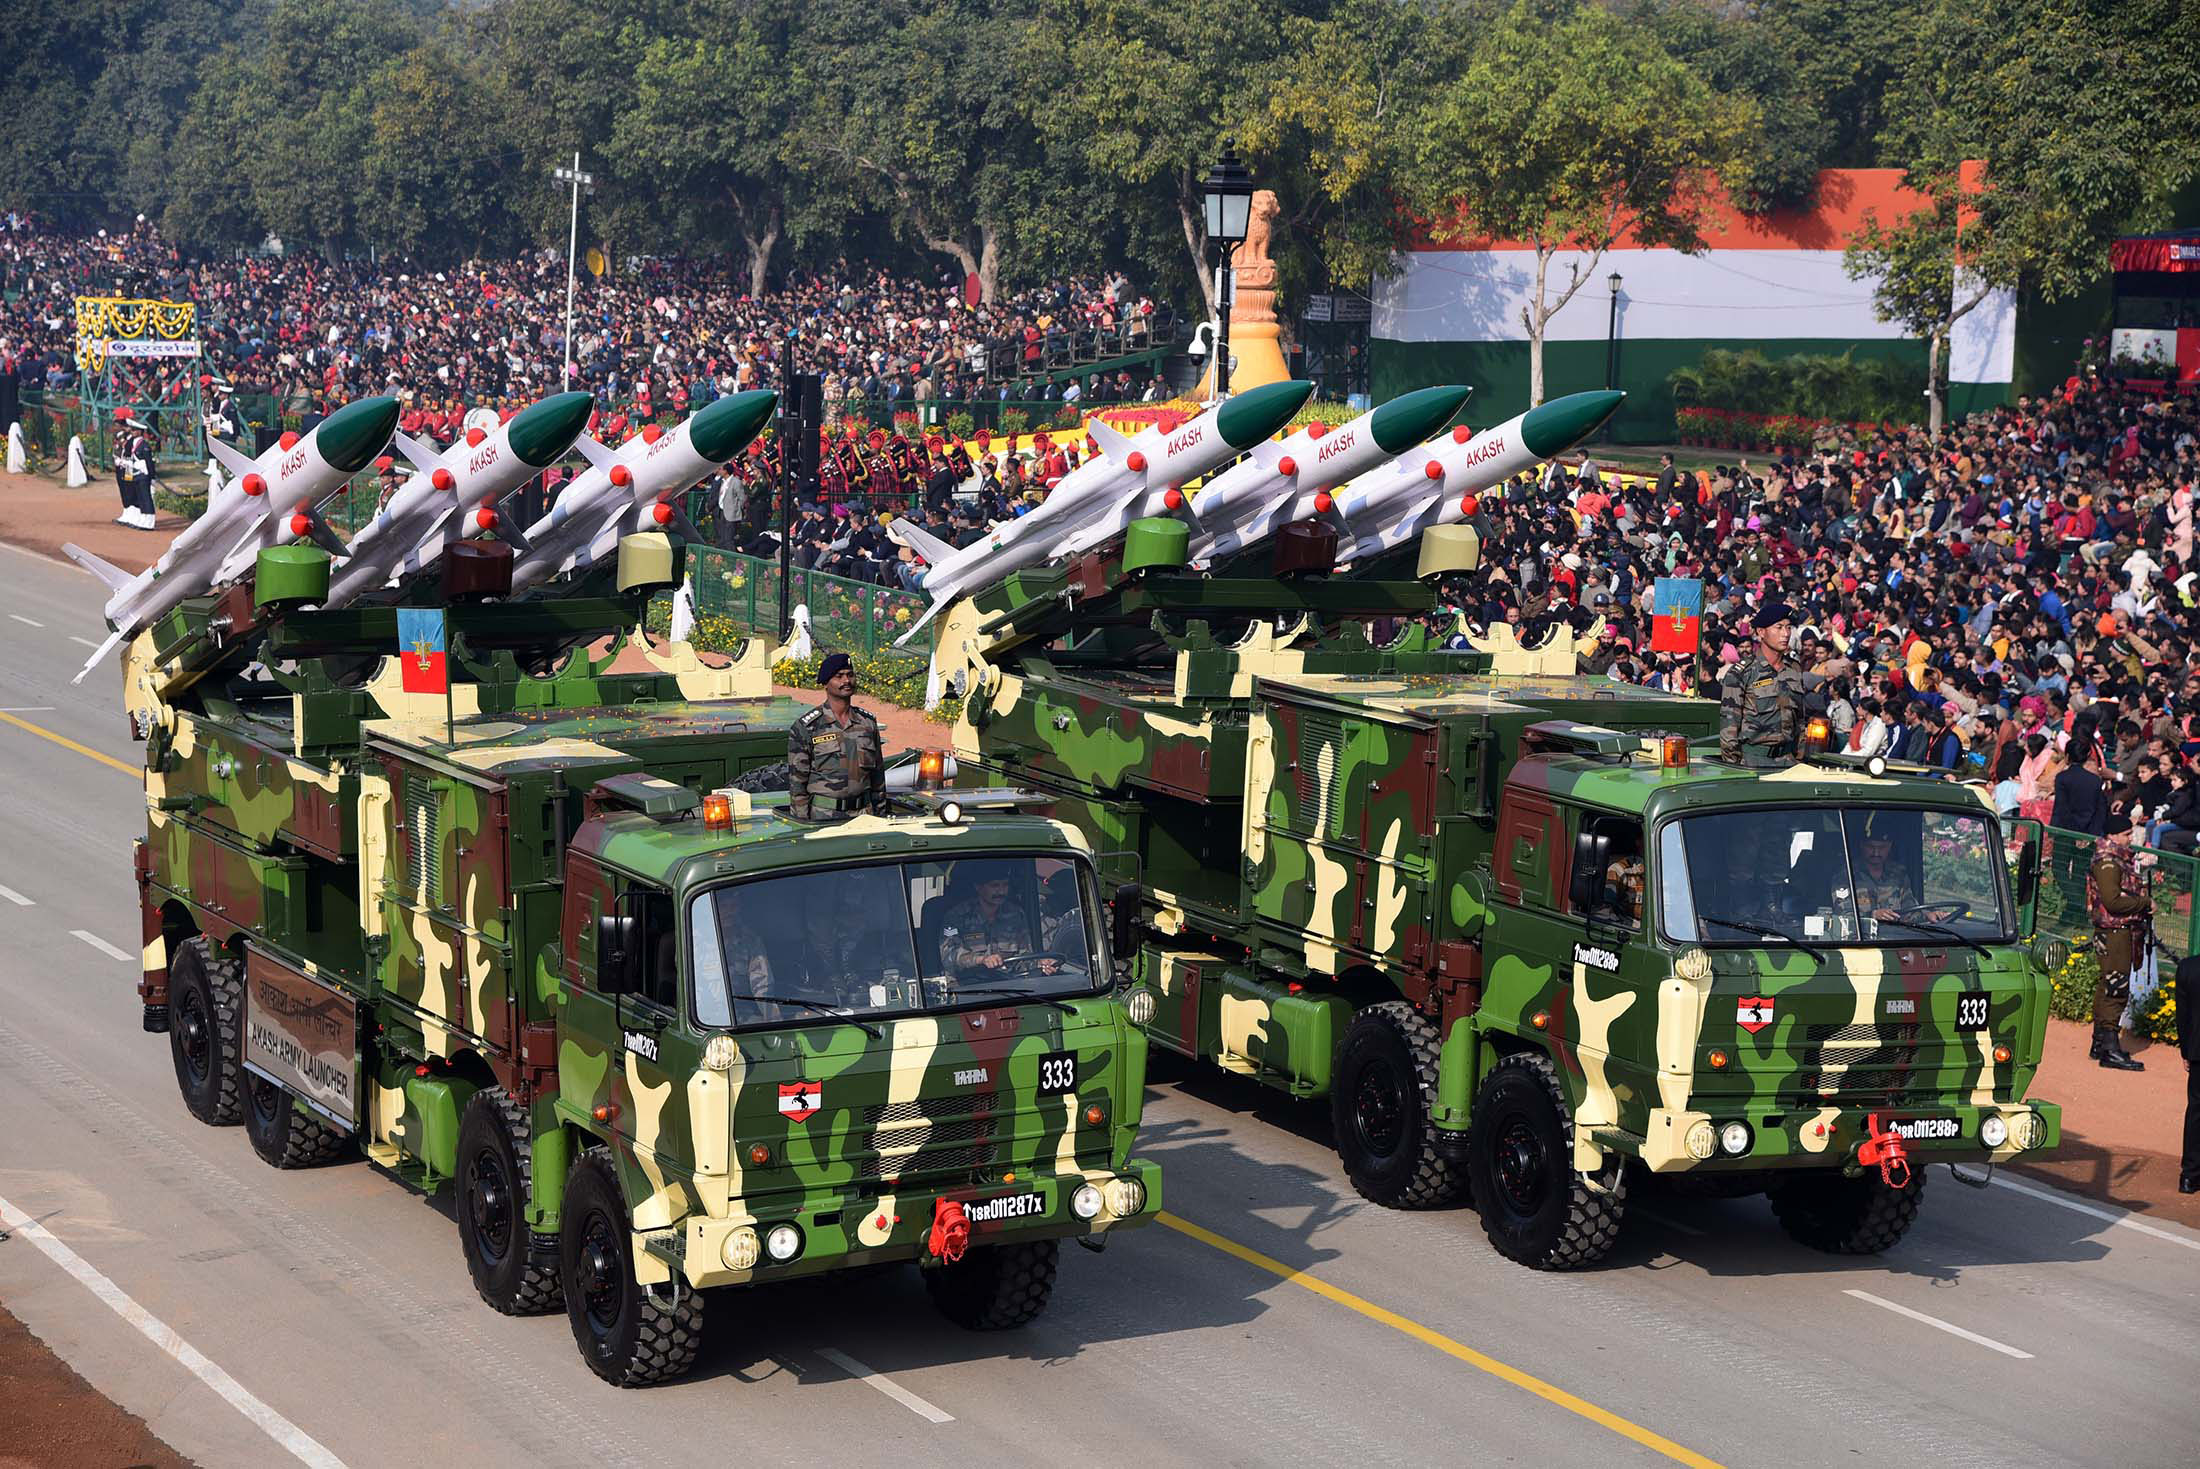 Akash Army Launcher